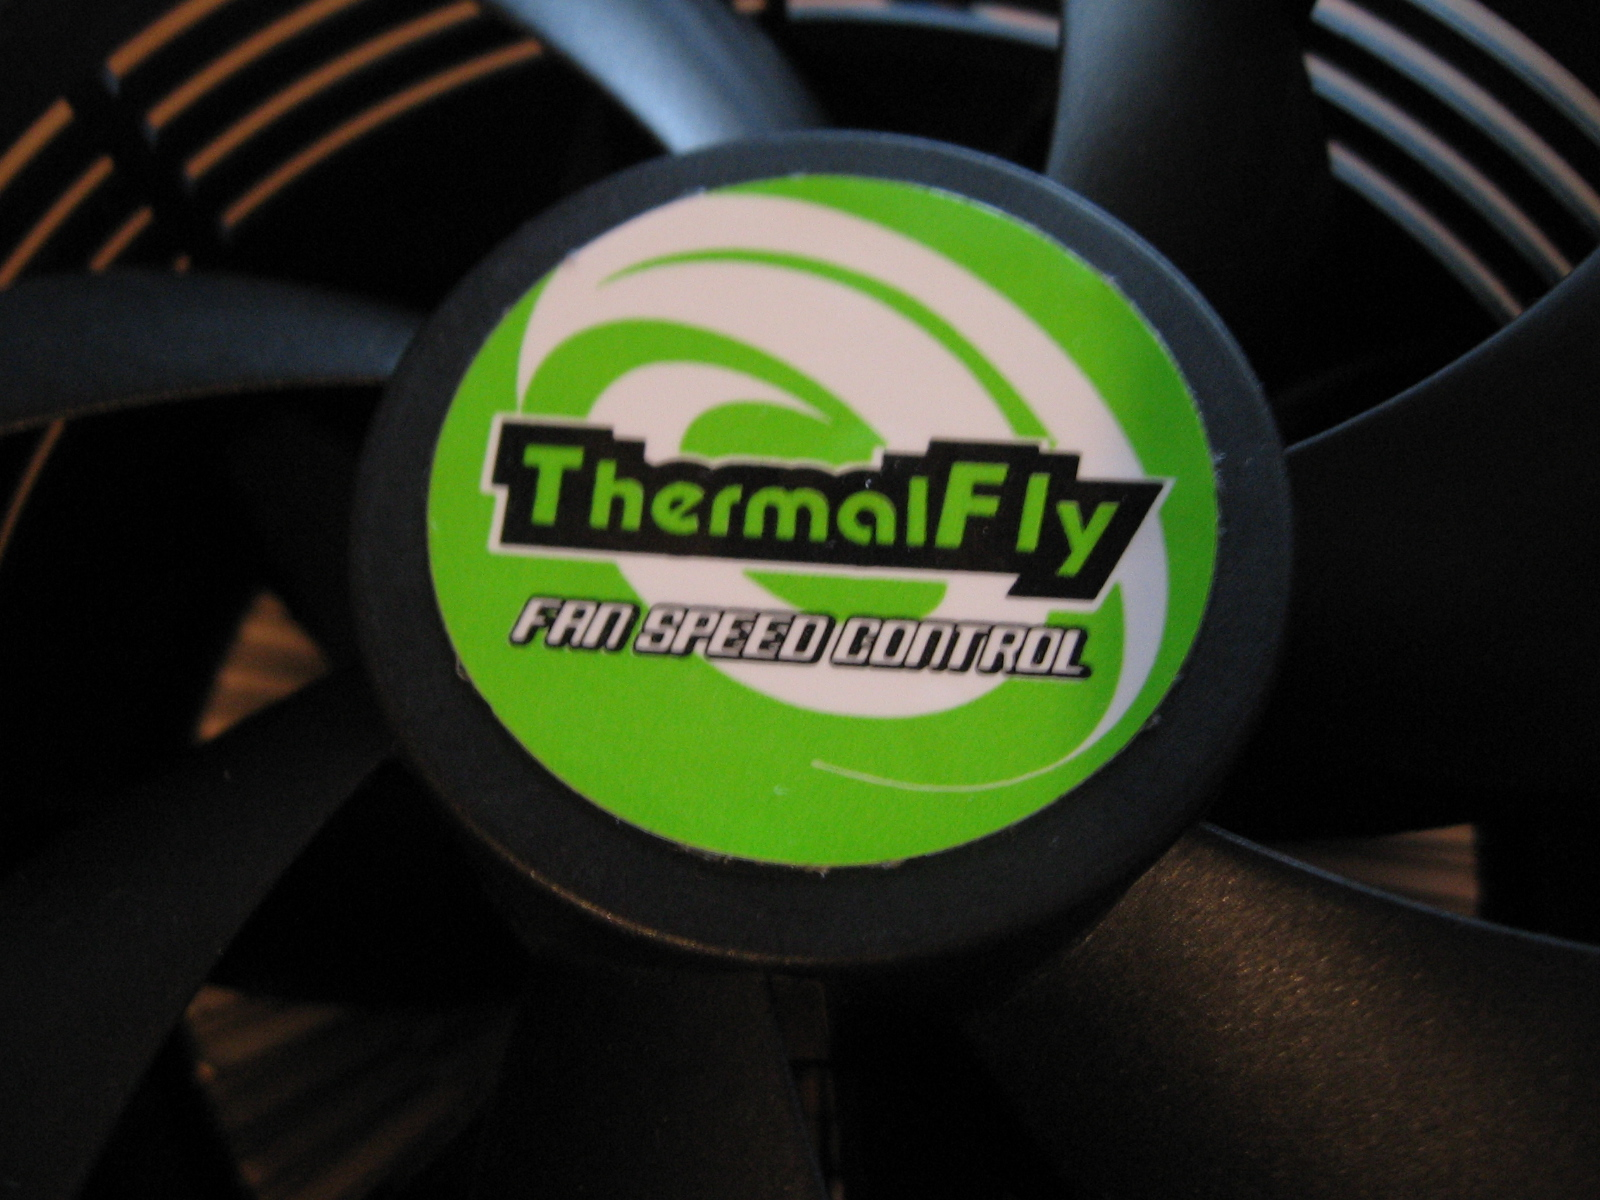 http://phothorizons.free.fr/Thermalfly%20043.jpg